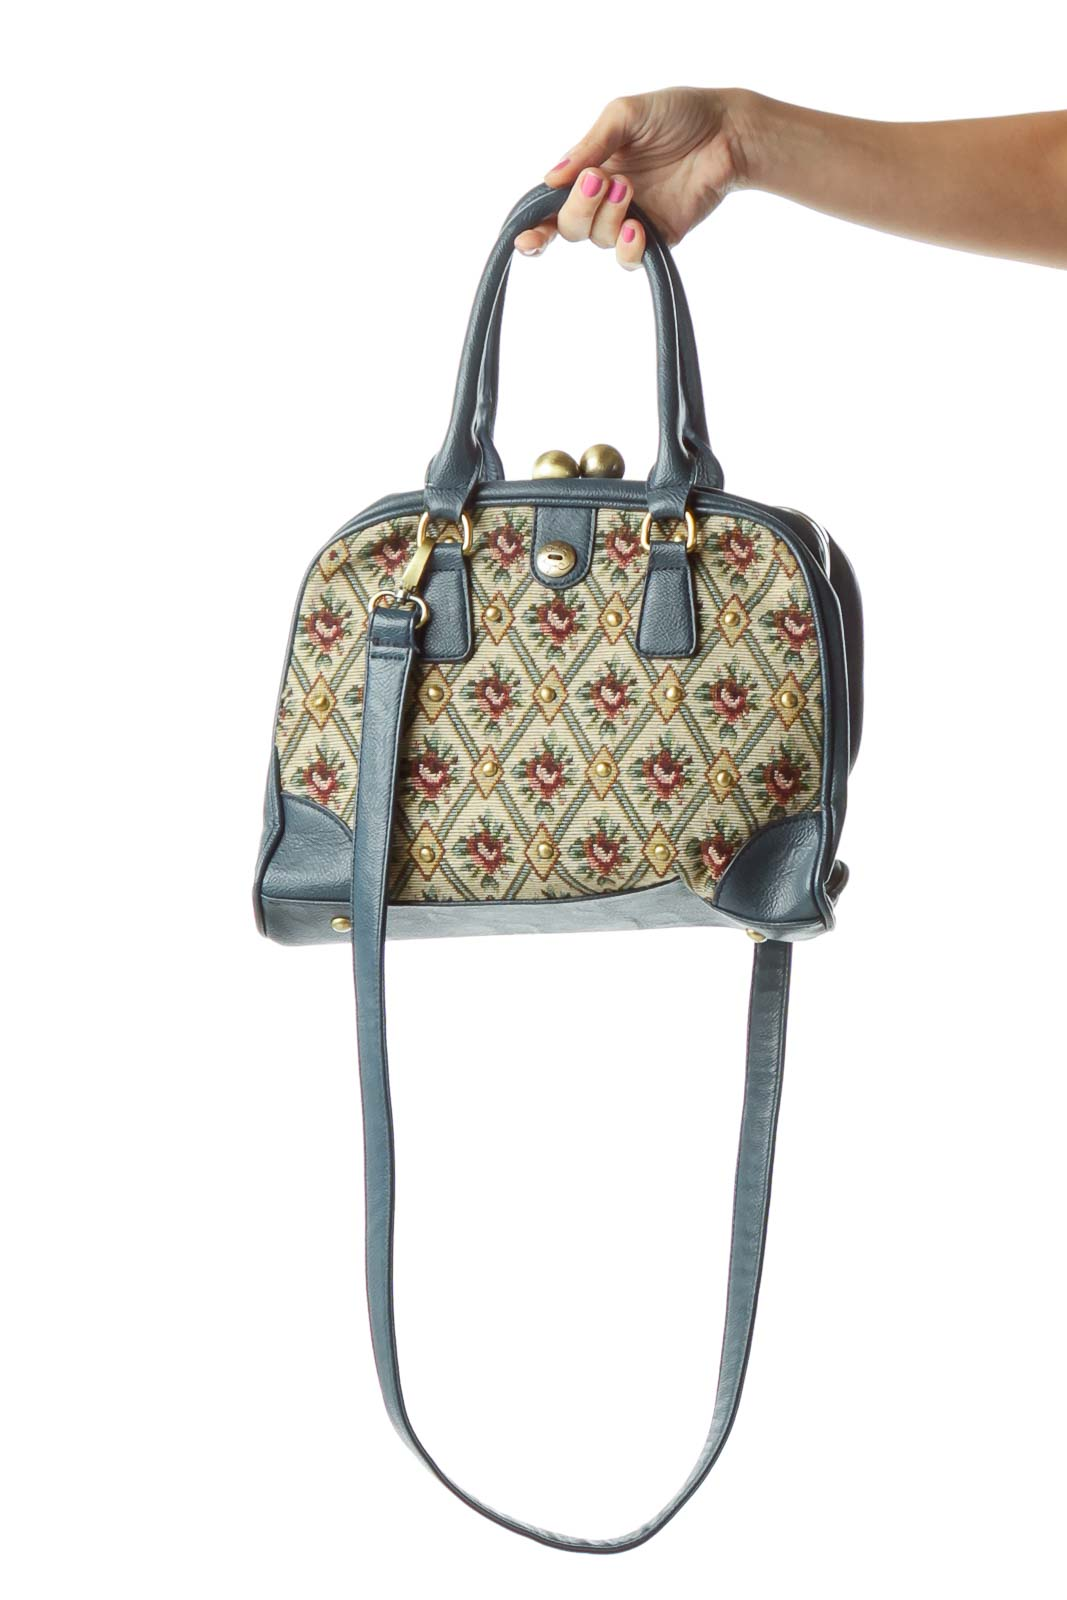 Blue Floral Woven Leather Trim Satchel